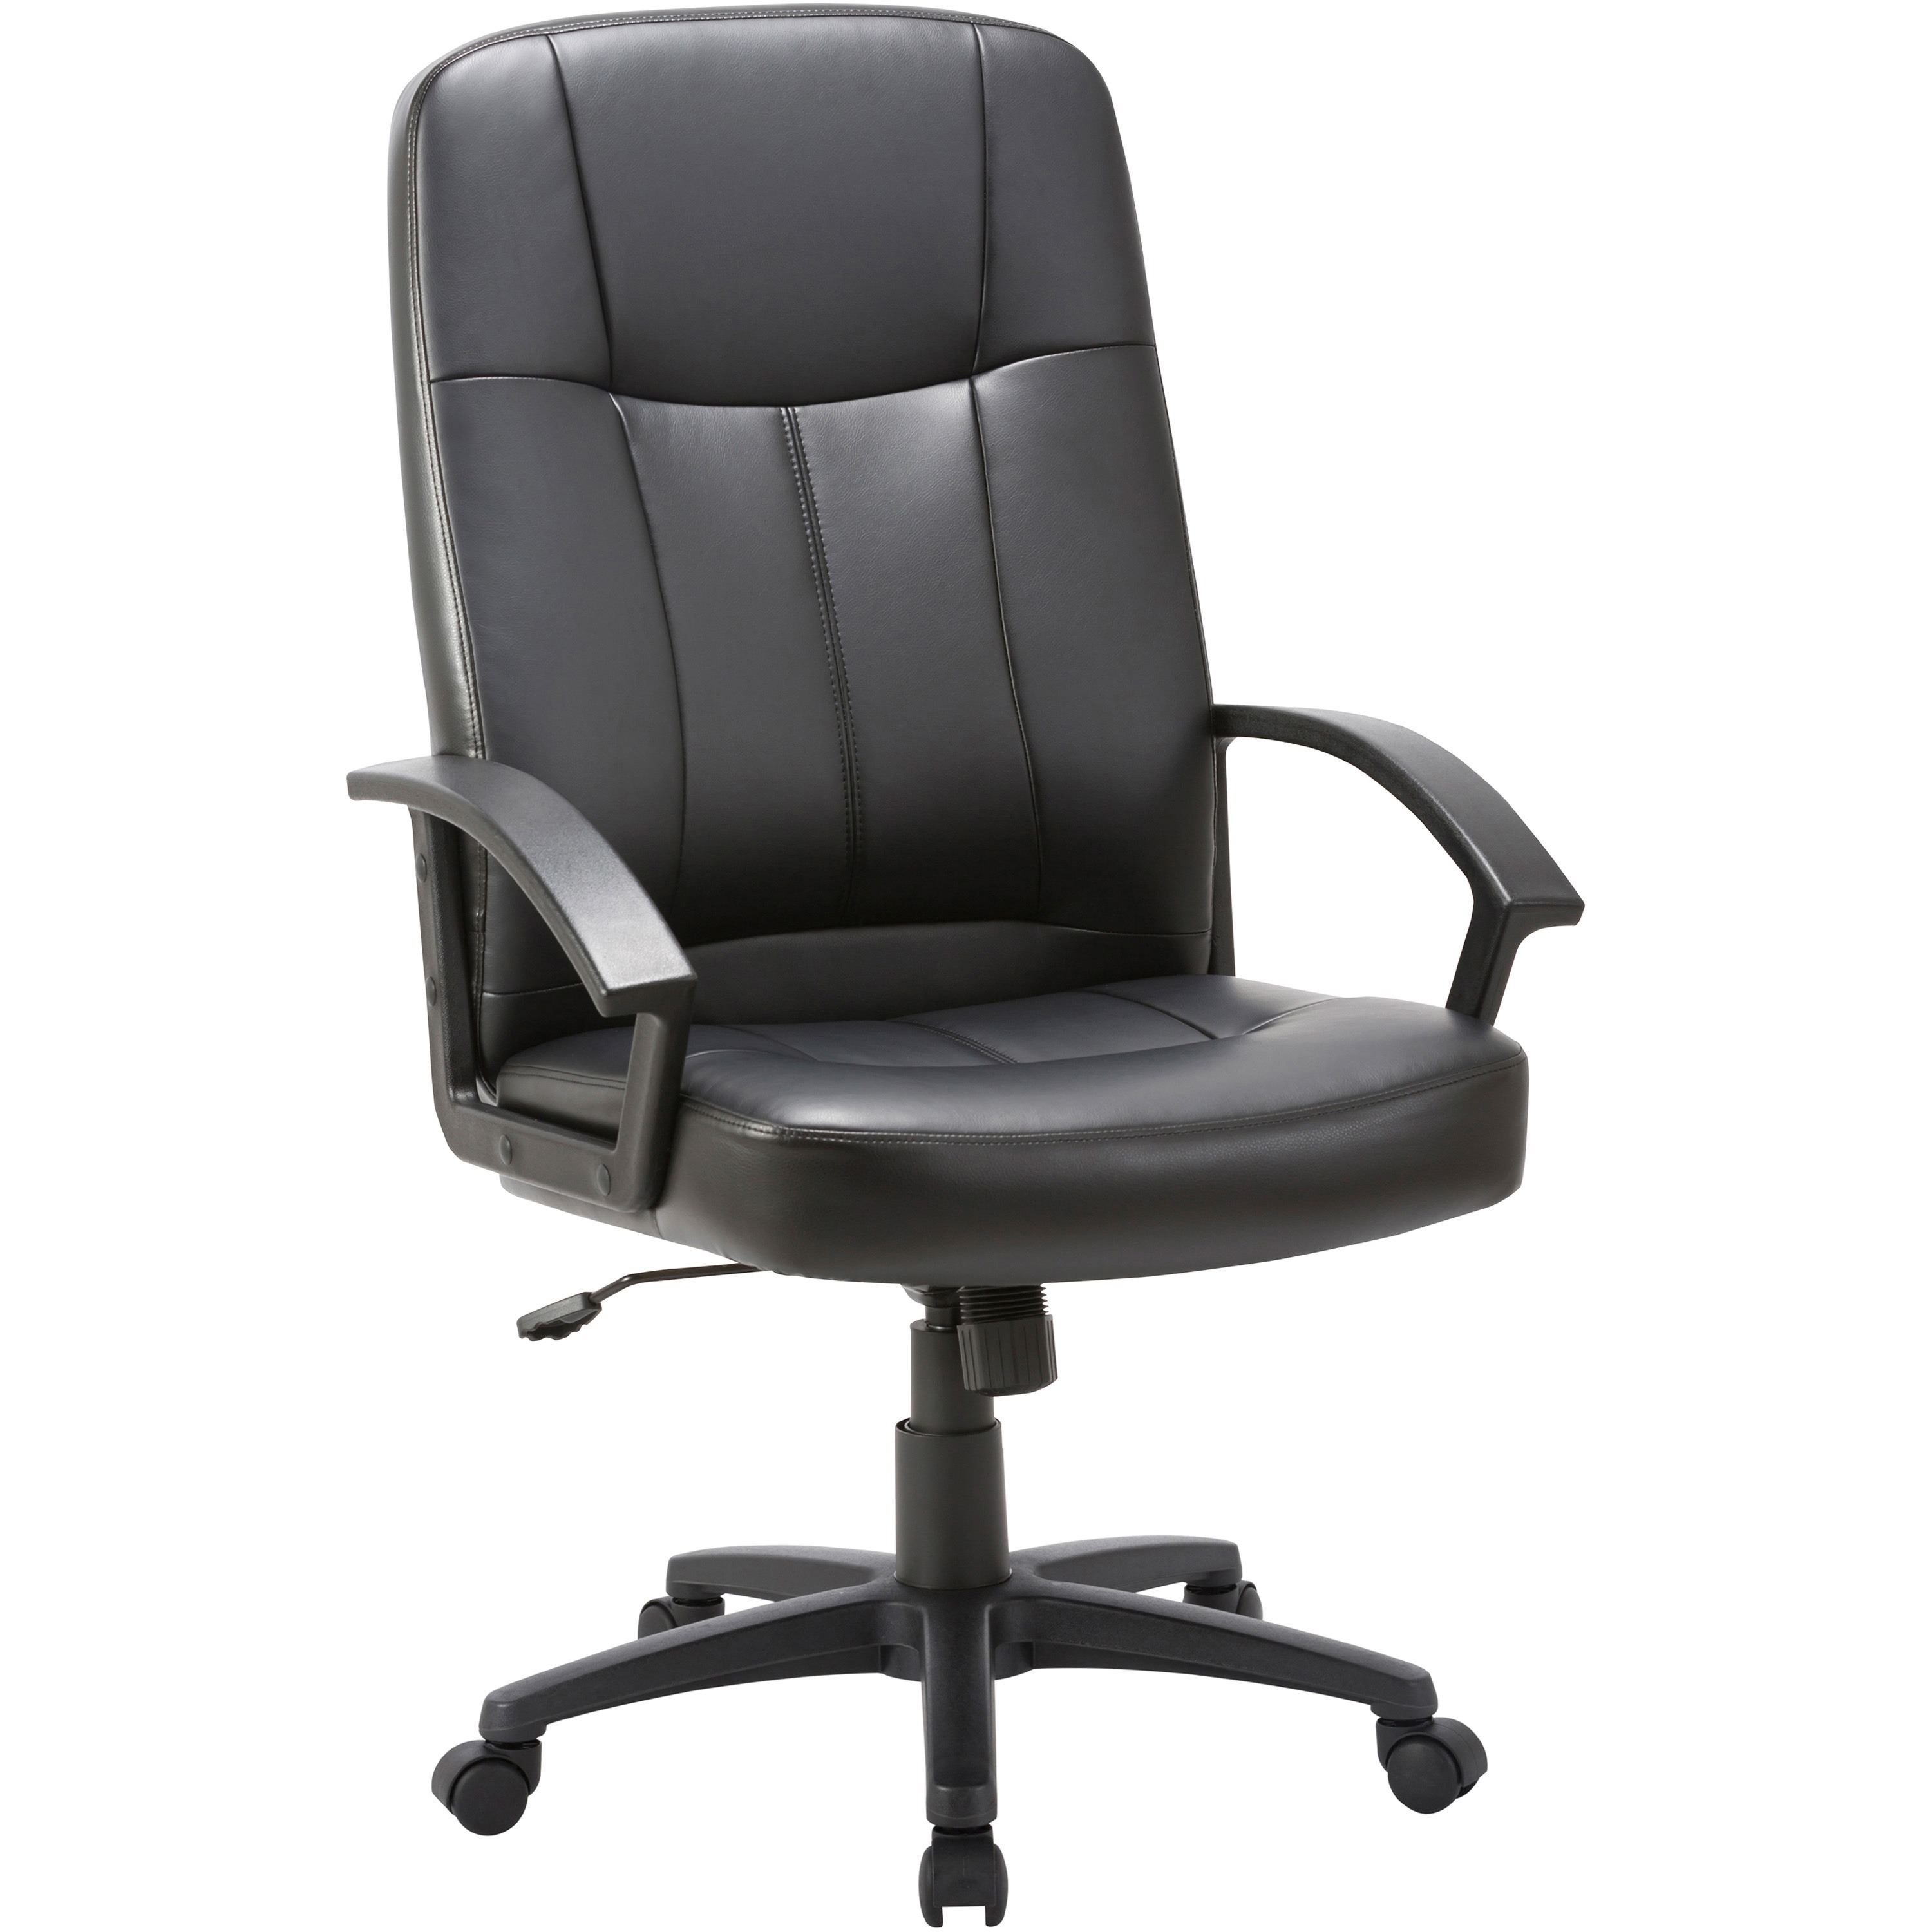 office chair accessories 3 row suv captain chairs west coast supplies furniture